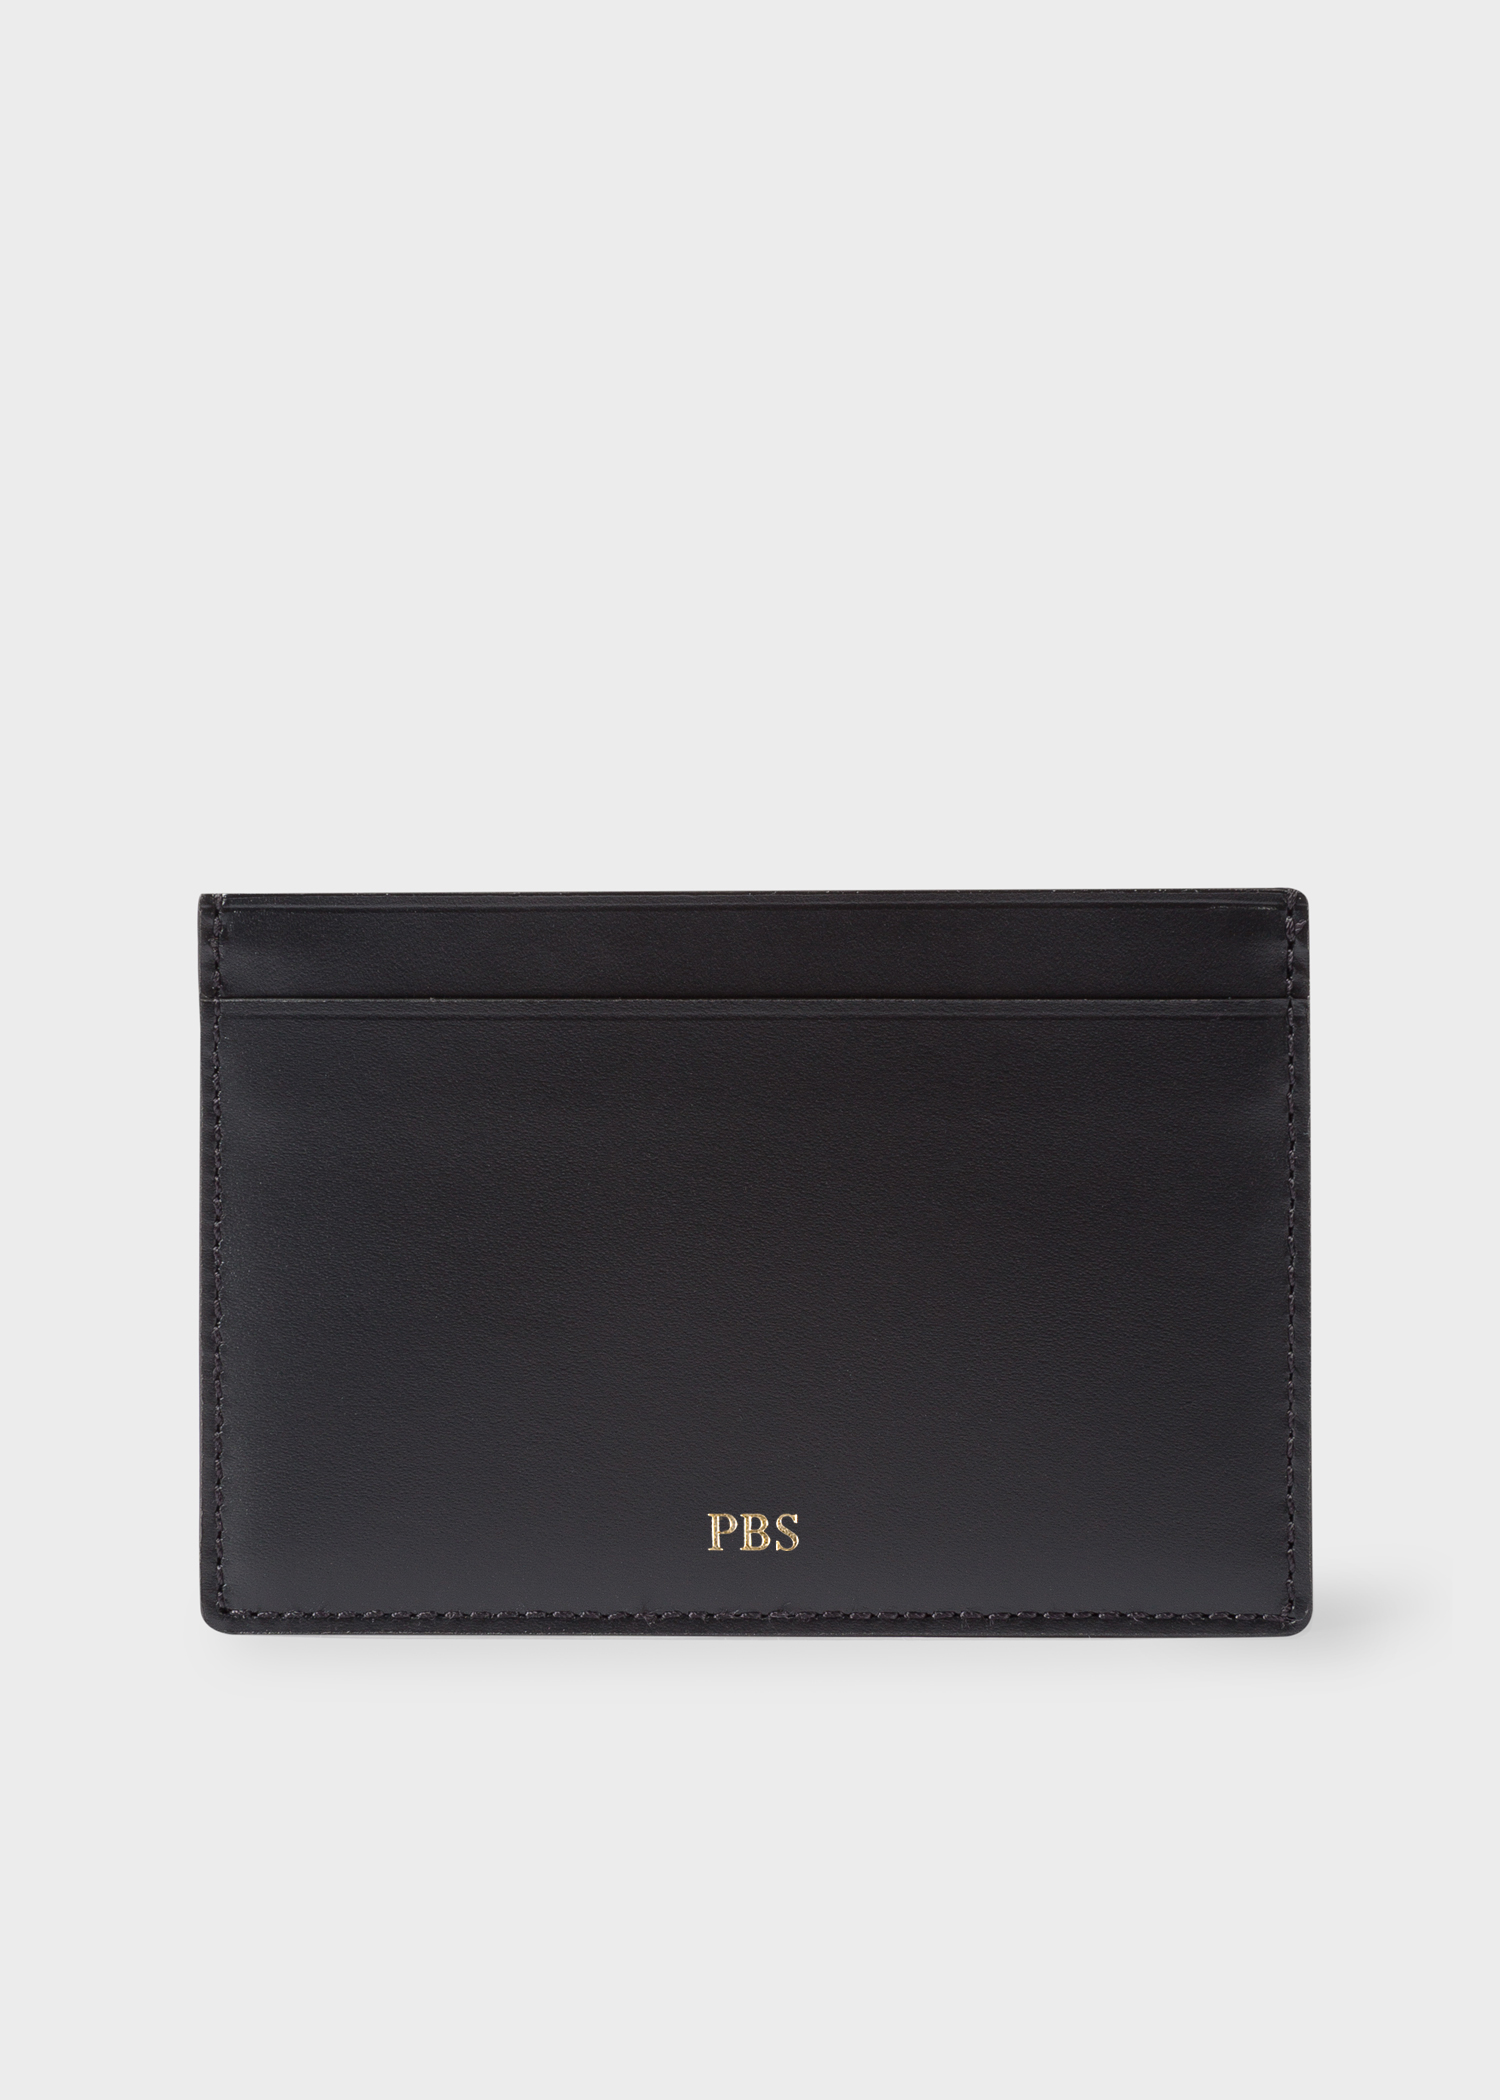 Men s Black Leather Monogrammed Credit Card Holder - Paul Smith US 2dcc5aea93ac